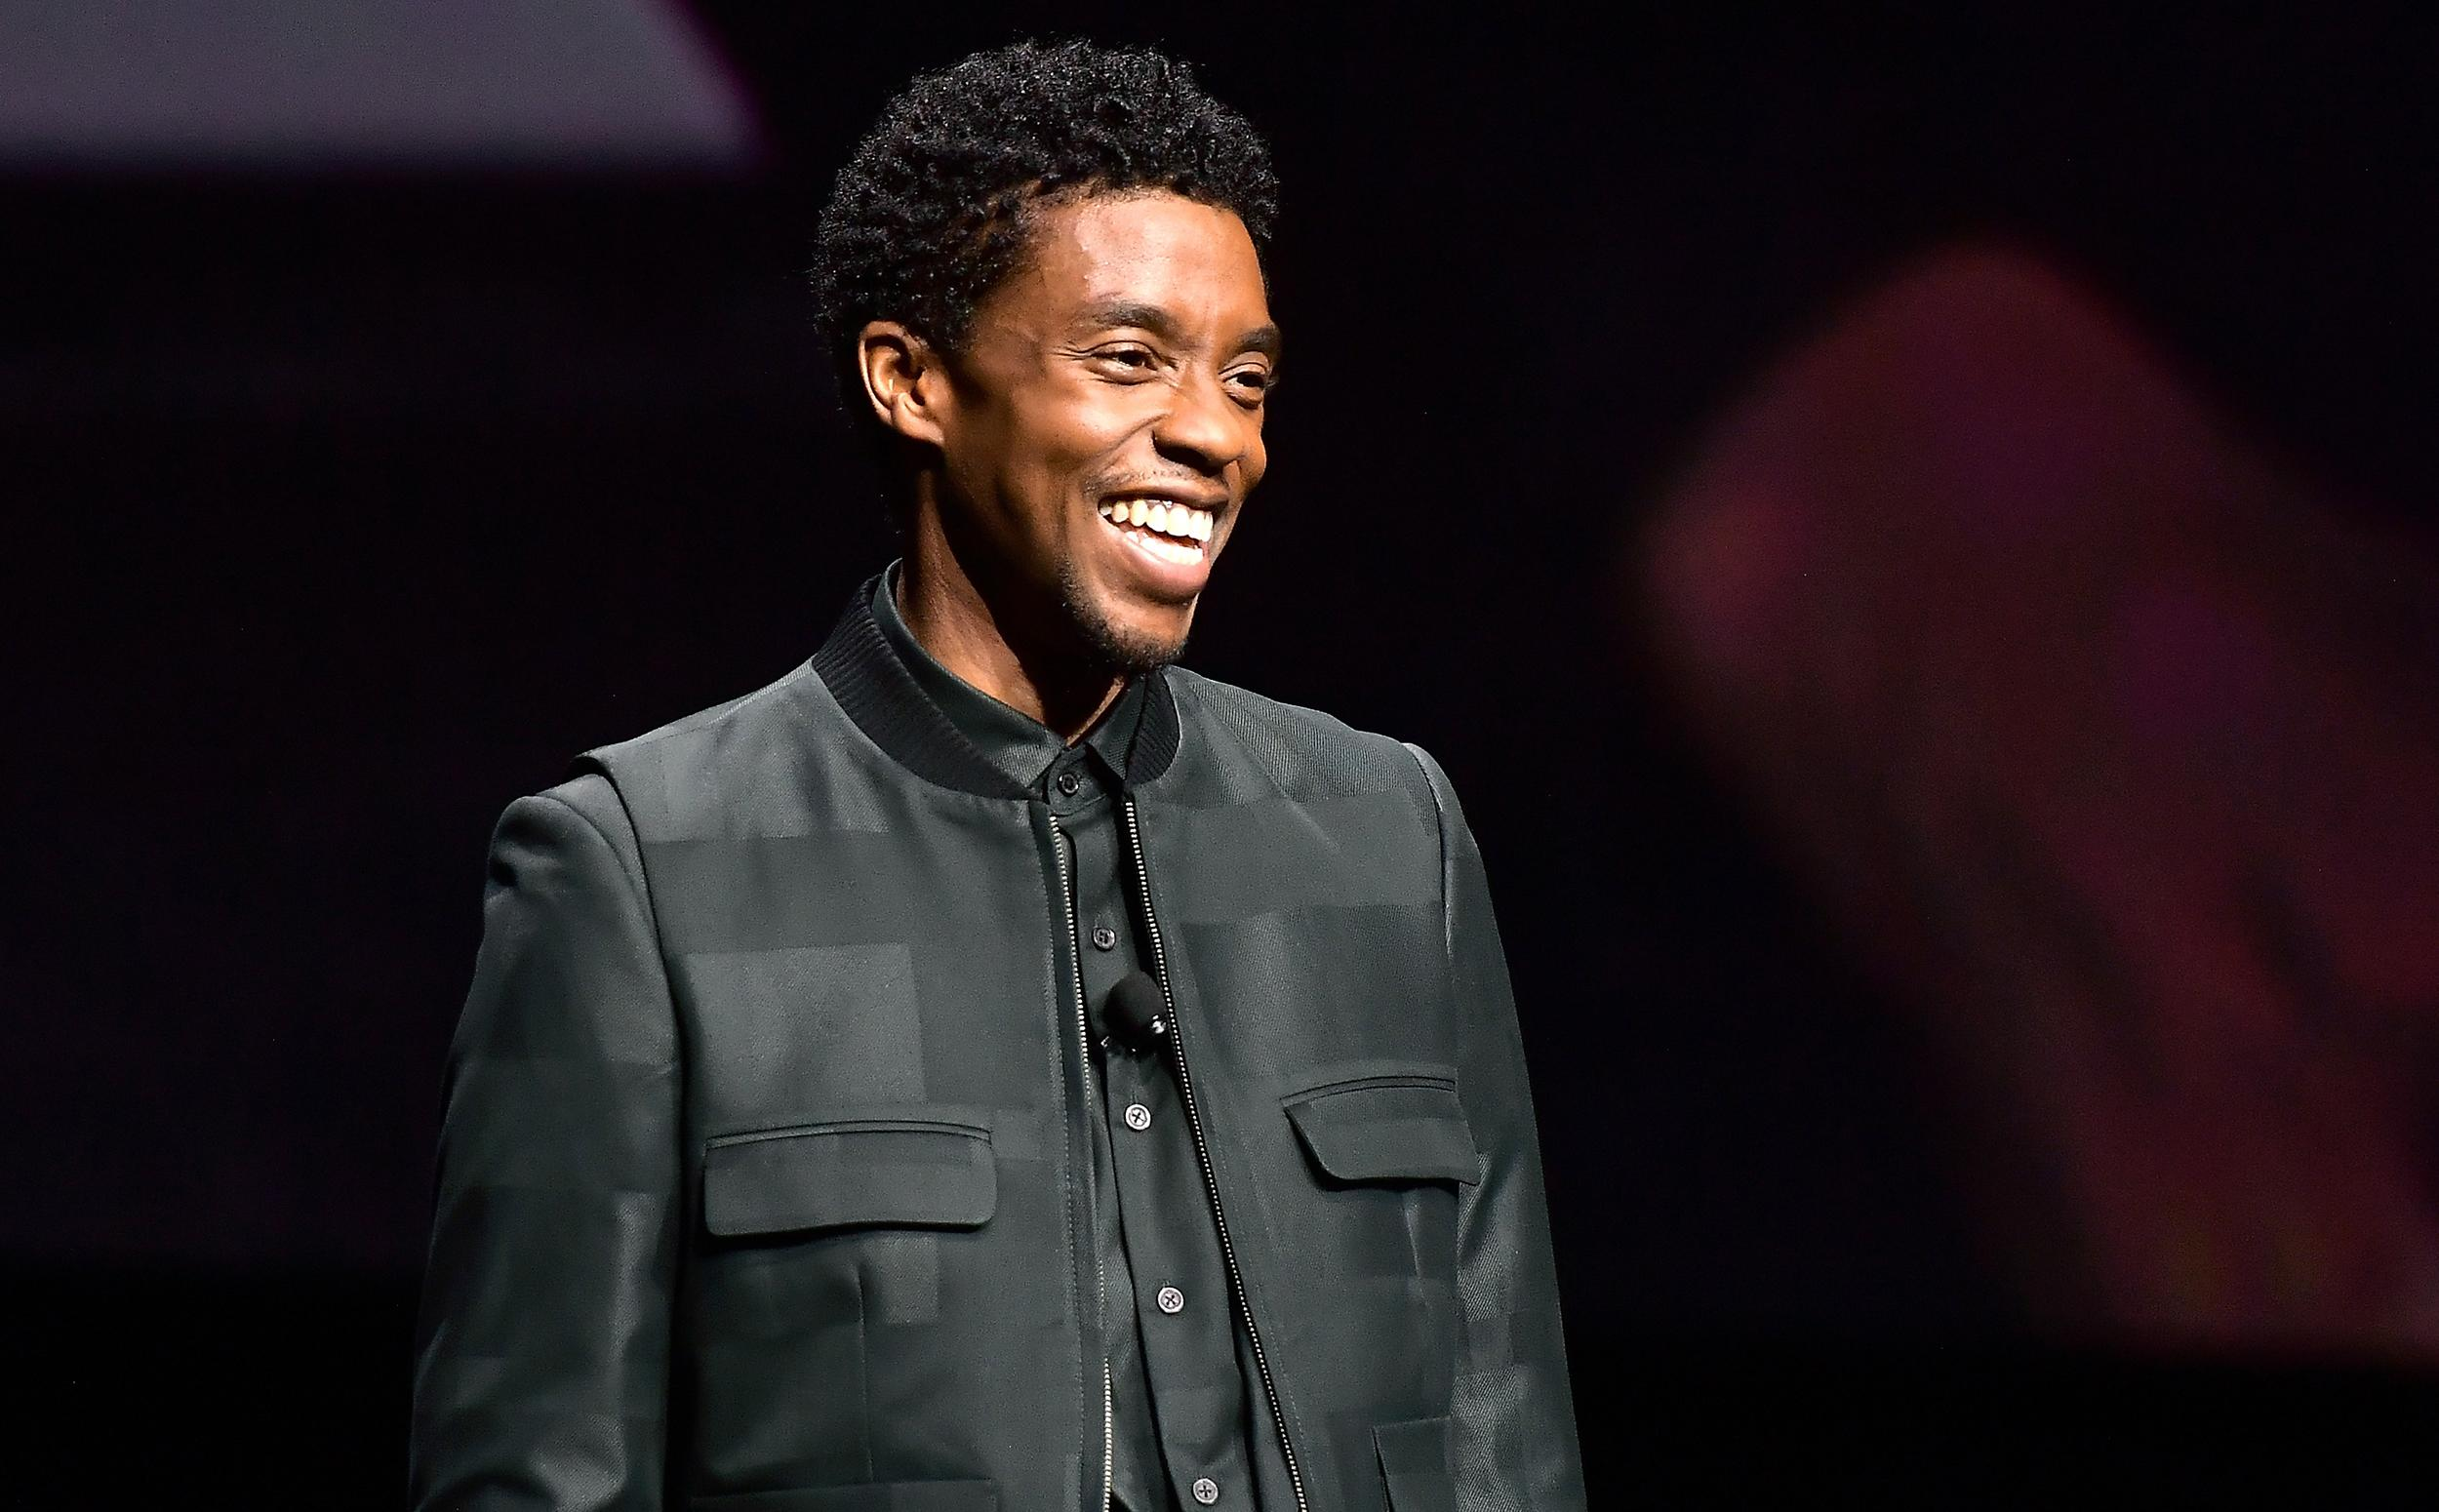 Thousands petition for Chadwick Boseman statue to replace Confederate monument